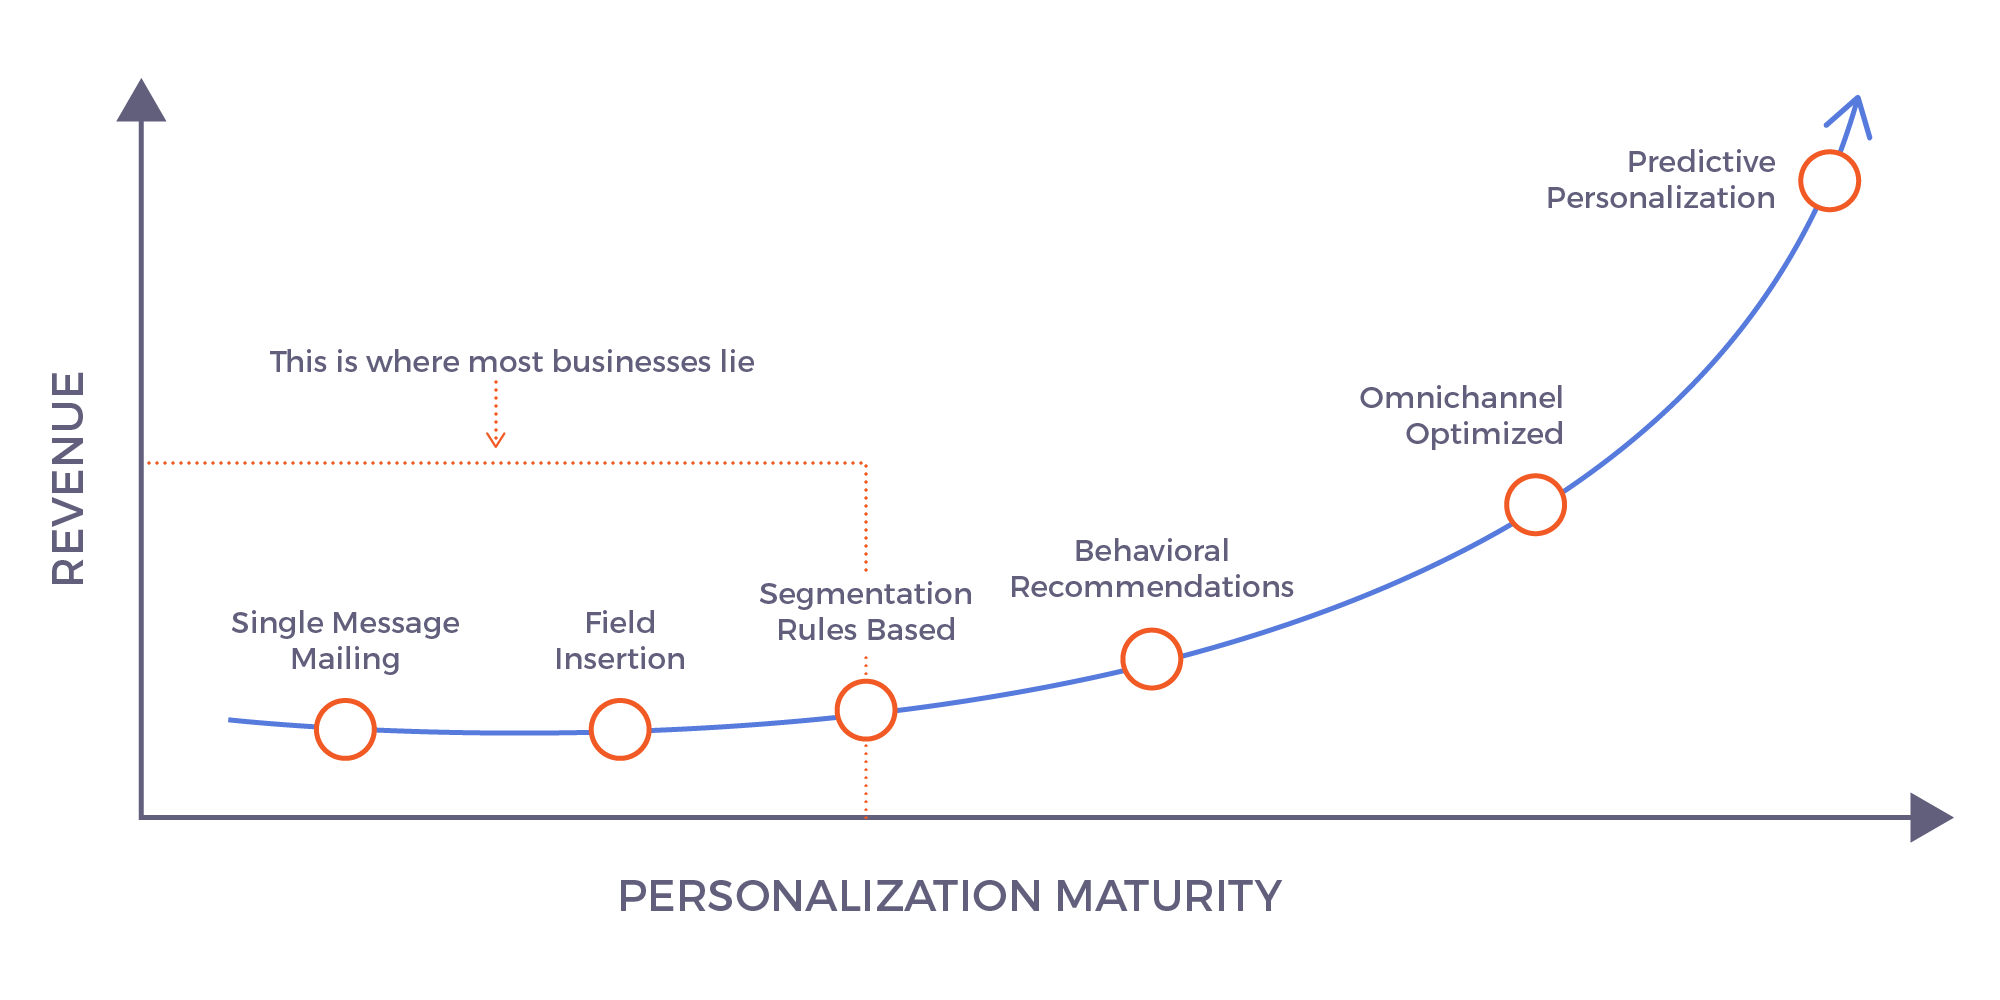 How to Make Personalization at Scale More Personal